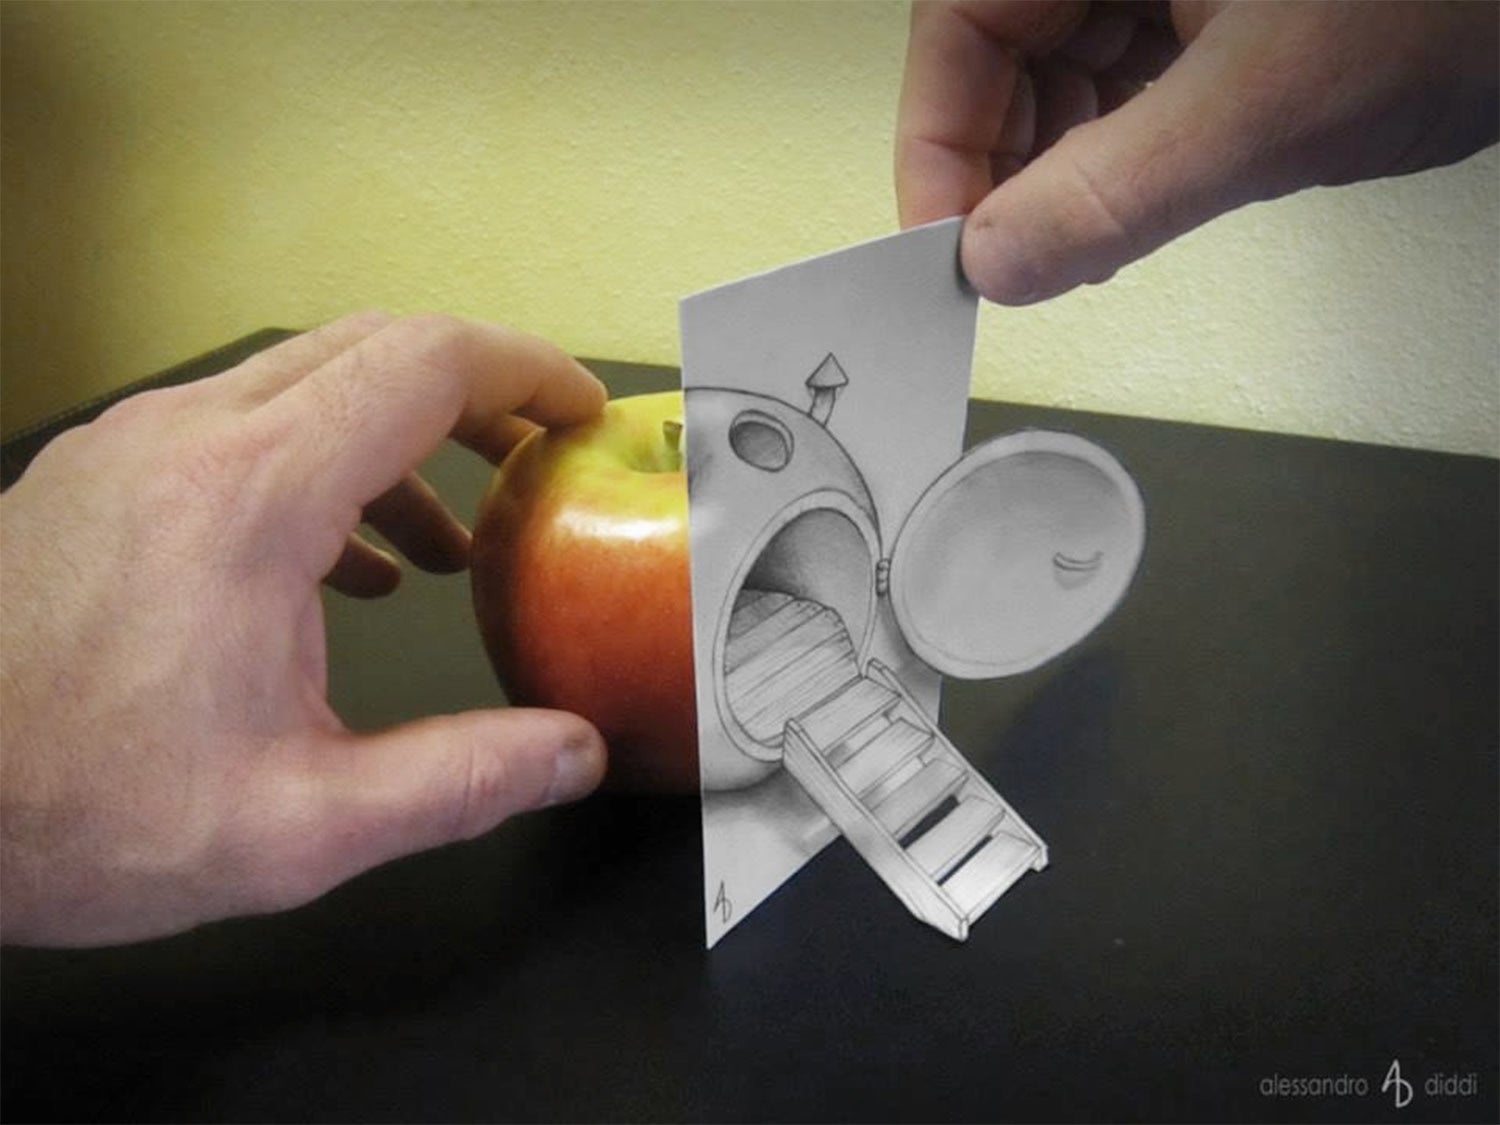 These cool anamorphic drawings will play with your brain